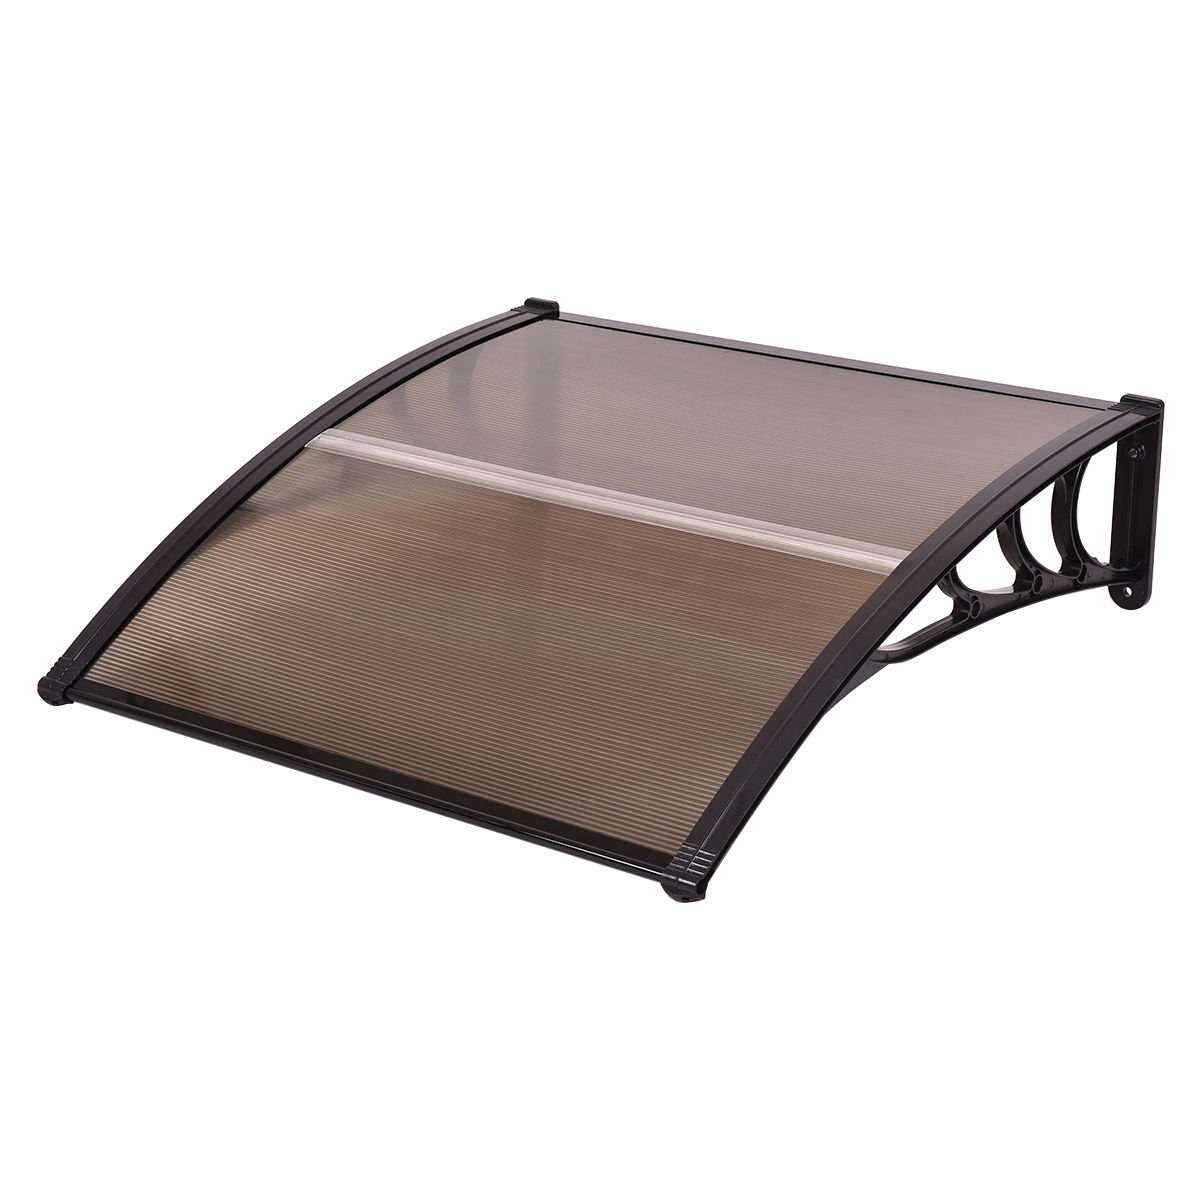 """Tangkula 40""""x 40"""" Window Awning Modern Polycarbonate Cover Front Door Outdoor Patio Canopy Sun shetter 3 Colors (Brown with Black Edge)"""